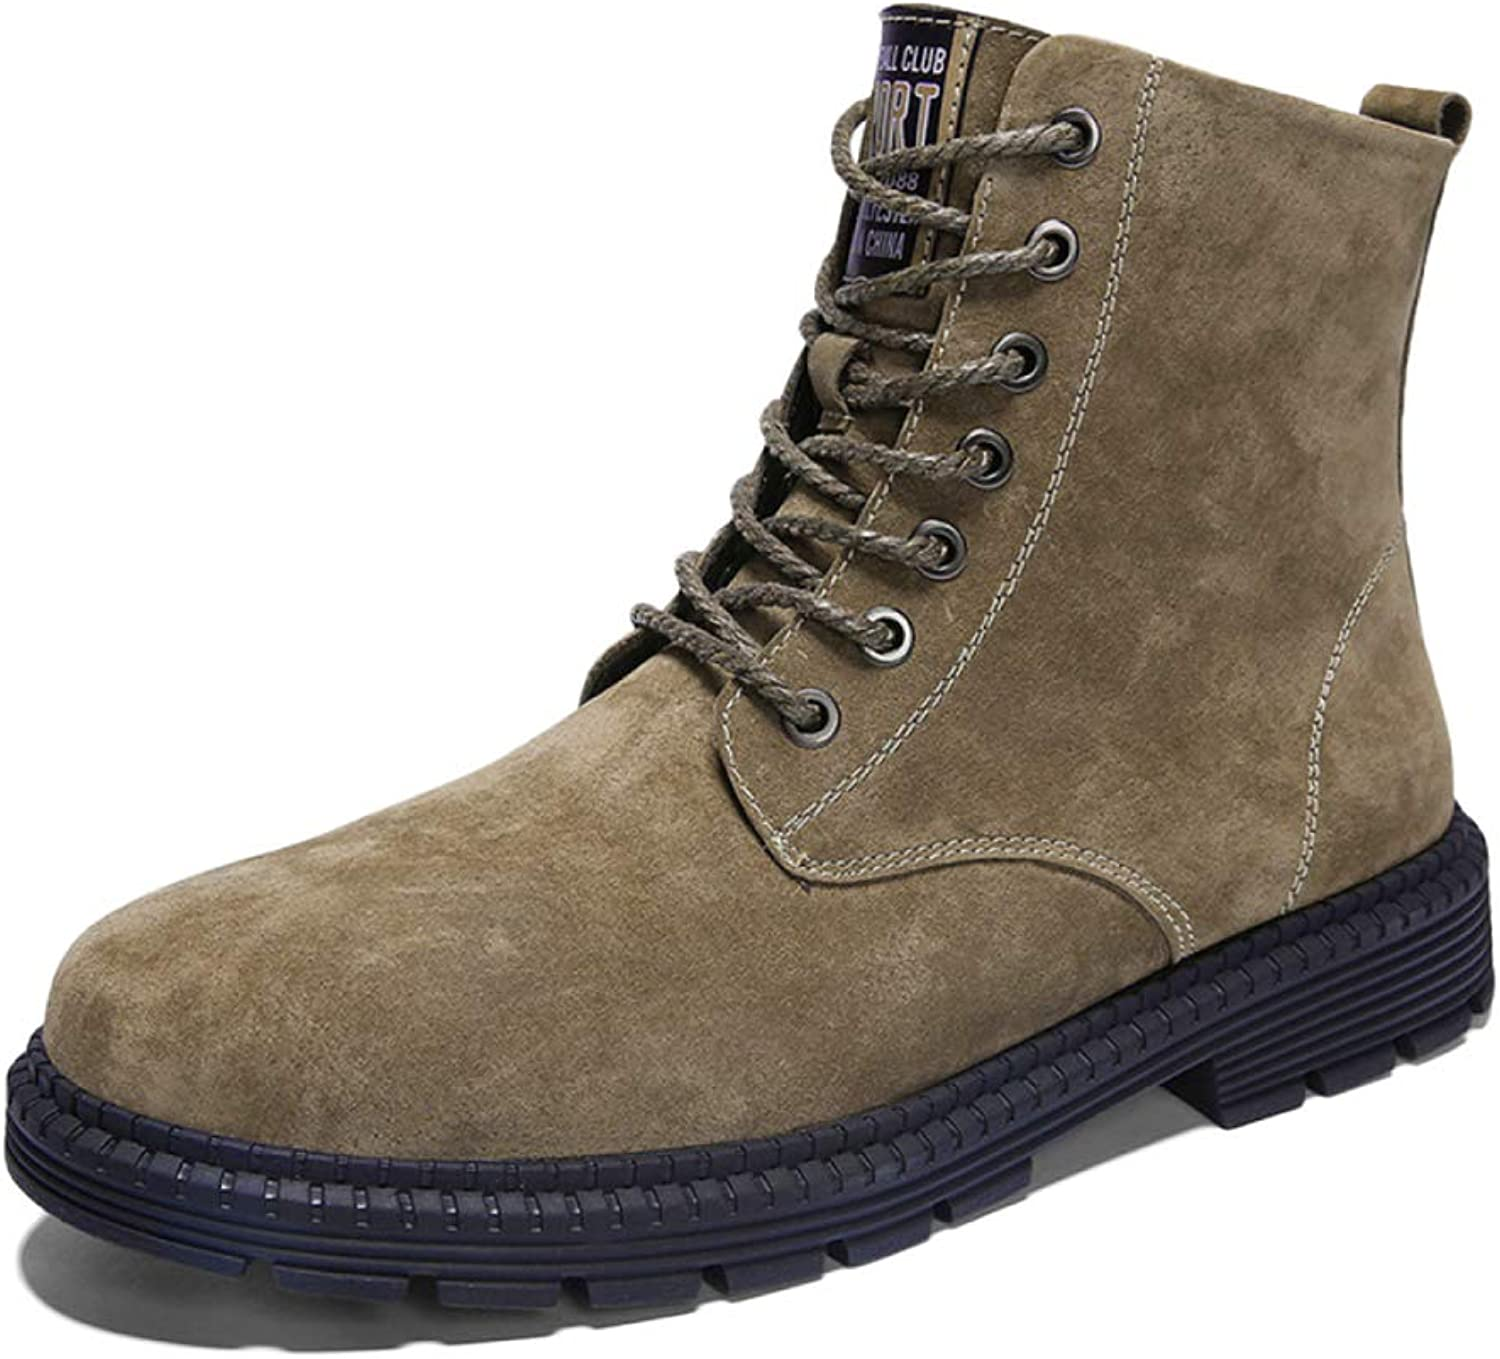 Men's Boots Work Boots Lightweight Waterproof Trainers shoes Martin Boots